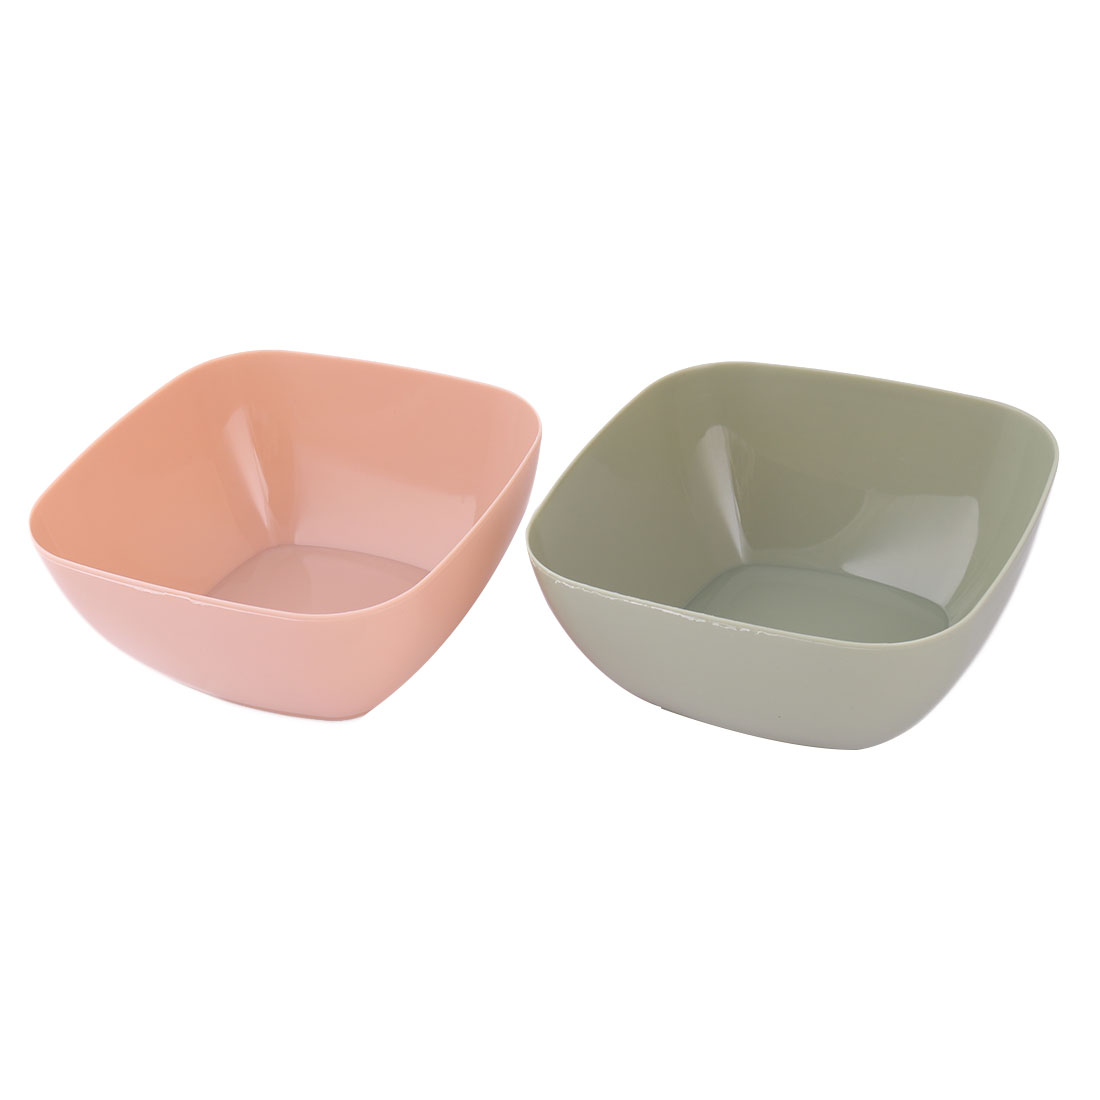 Family Plastic Food Fruit Vegetable Salad Snack Candy Holder Bowl Pink Pale Green 2pcs